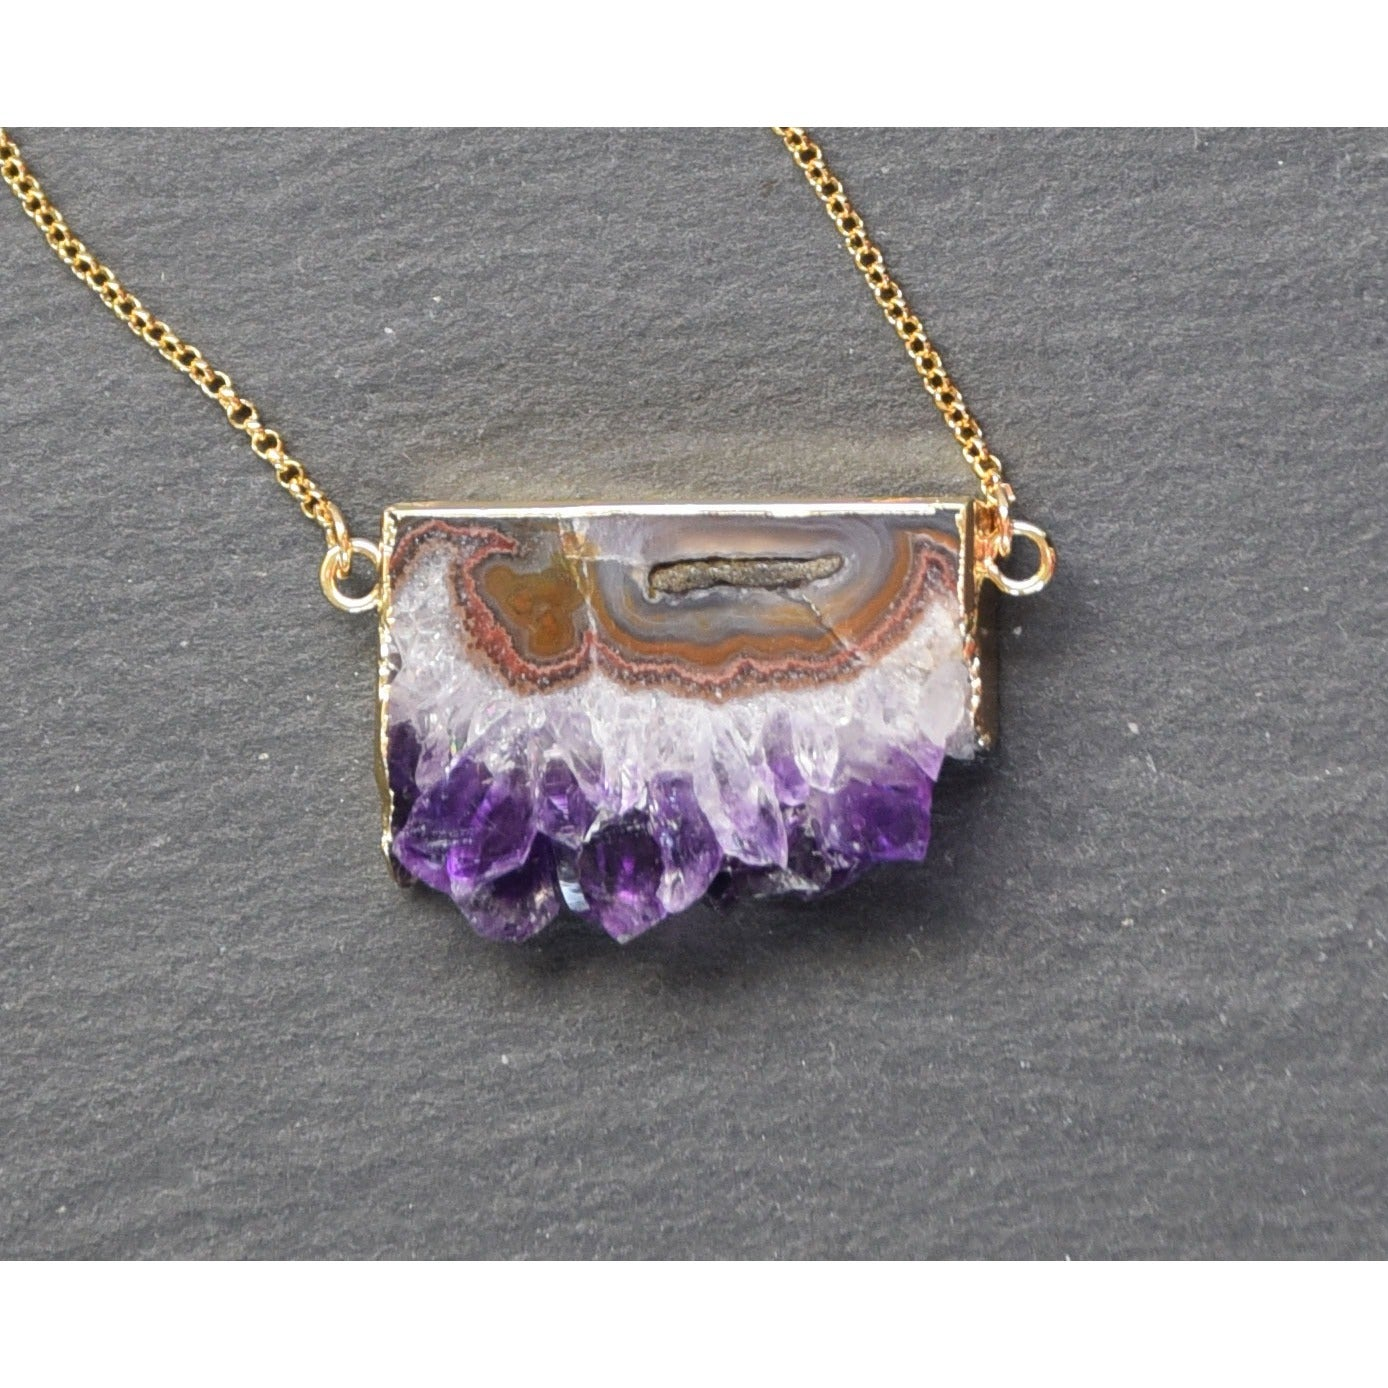 amethyst images necklace birthstone rockstargoddess necklaces crystal pinterest gold best on pendant raw february